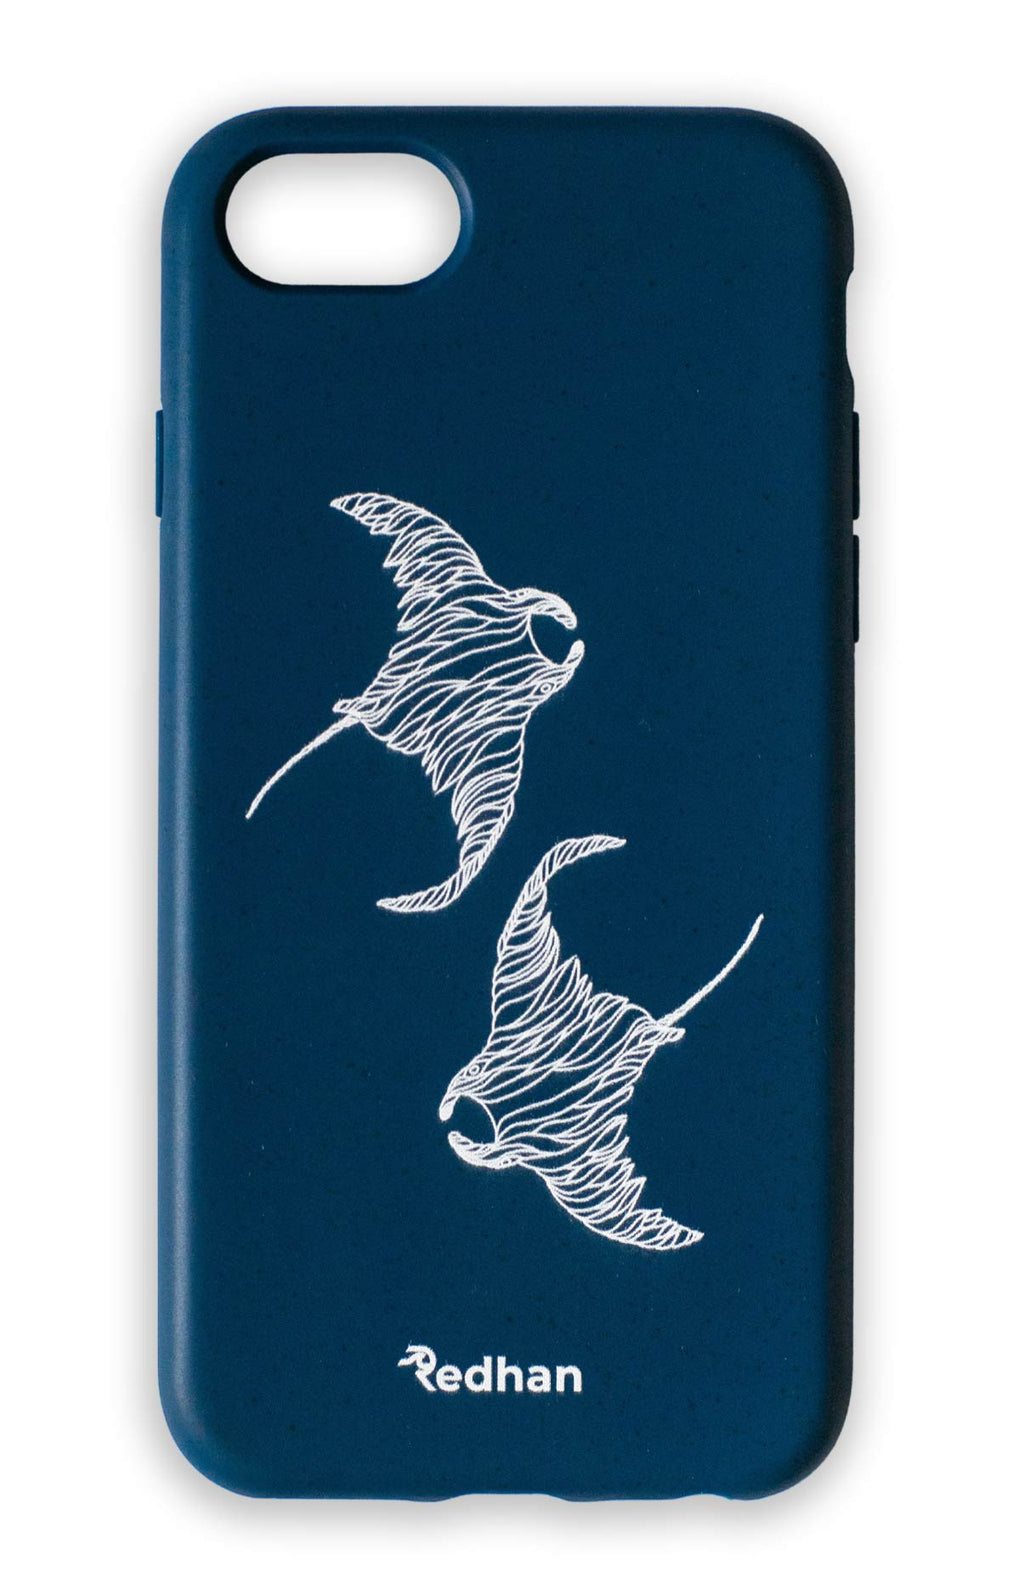 Eco Friendly iPhone 6 / 6S / 7 / 8 / SE (2nd Gen) Phone Case - Flowing Rays in Navy Blue